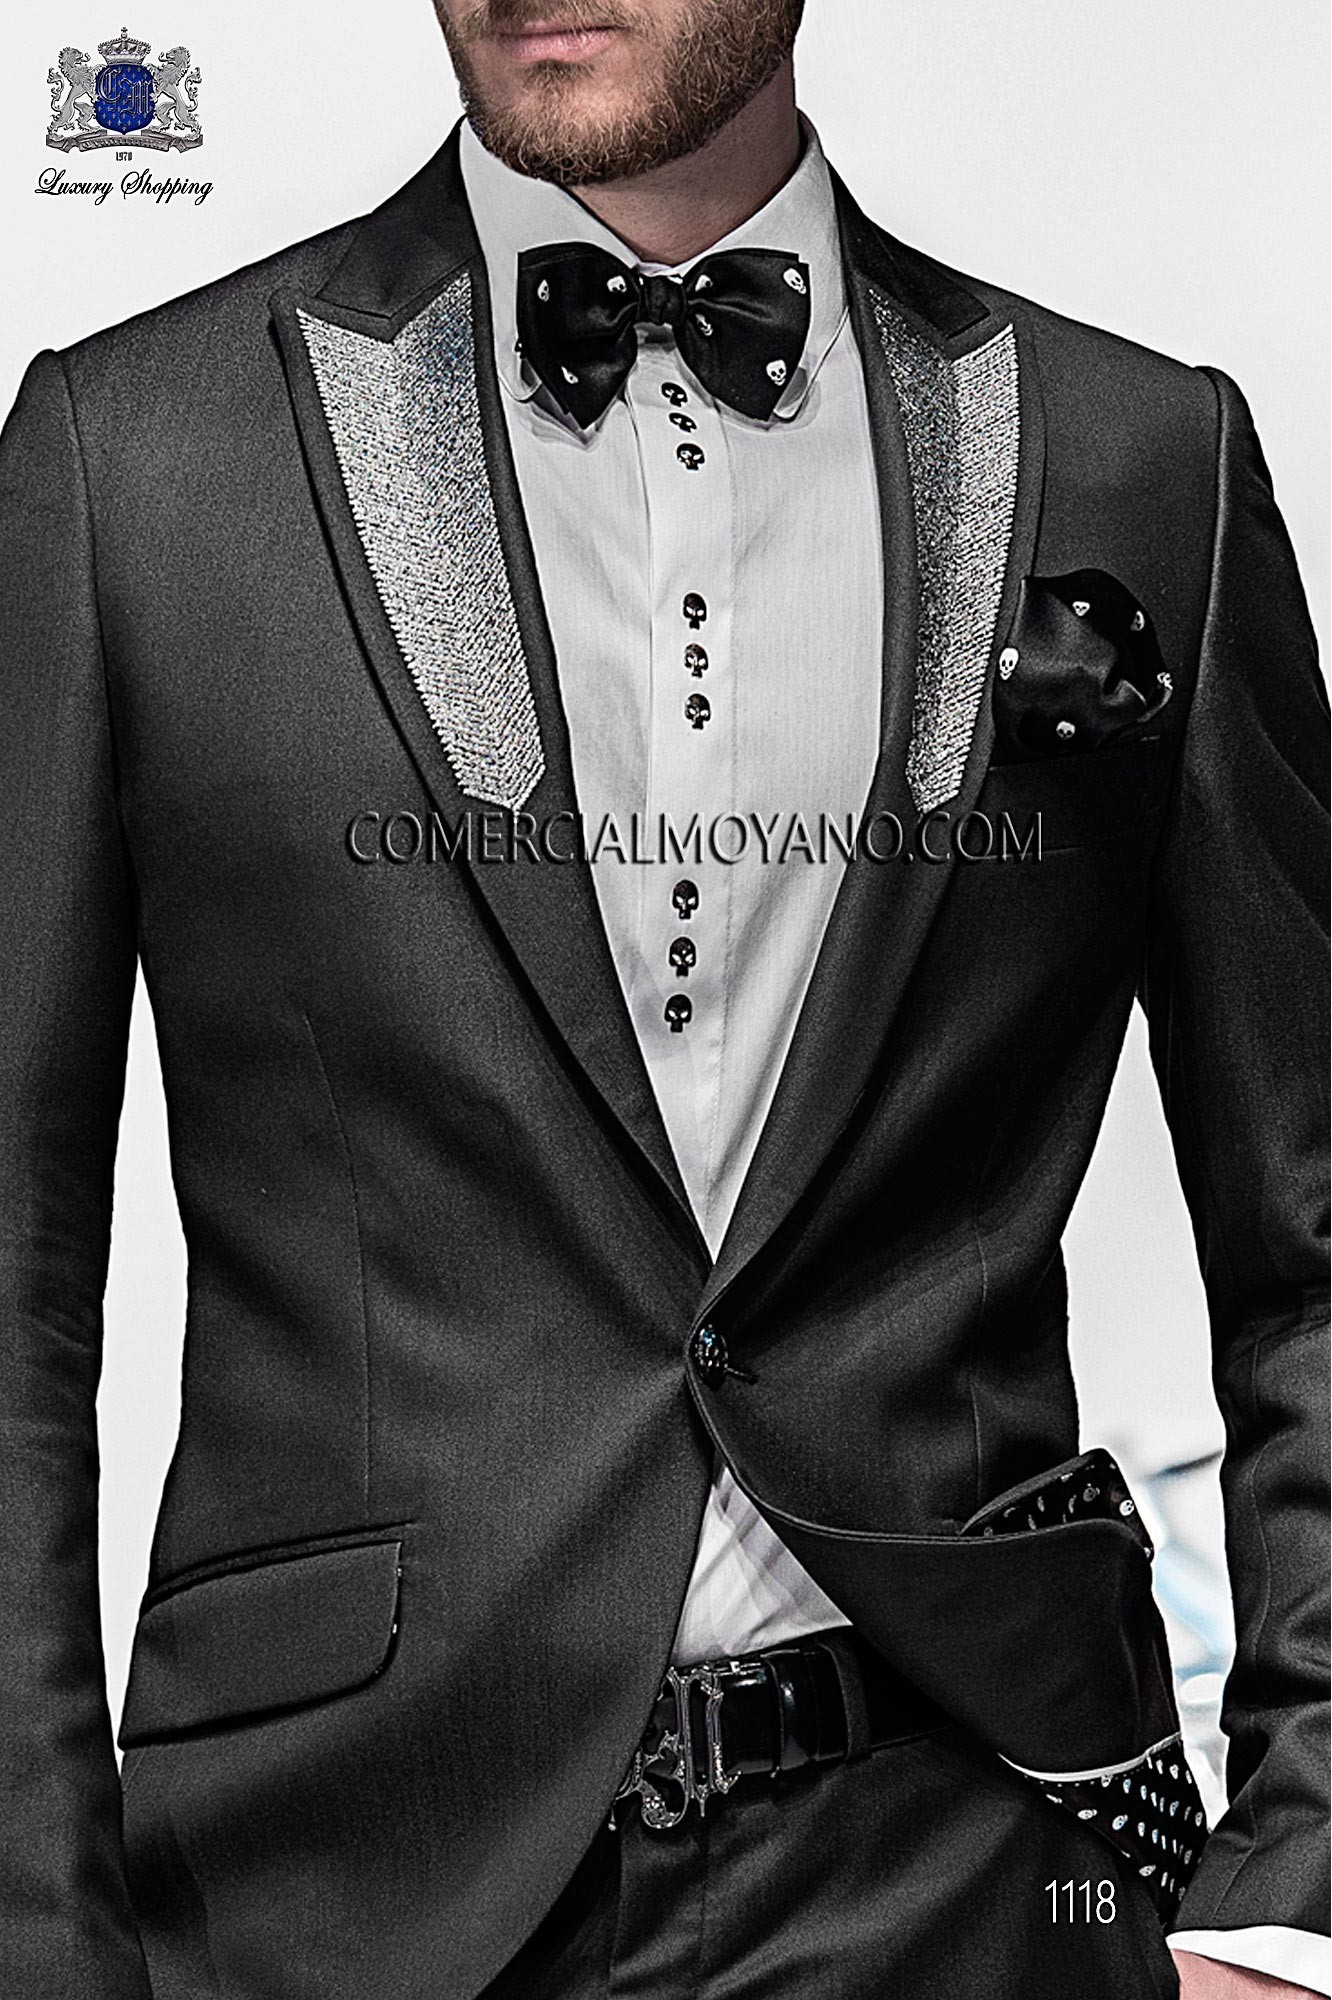 Italian emotion black men wedding suit, model: 1118 Ottavio Nuccio Gala Emotion Collection